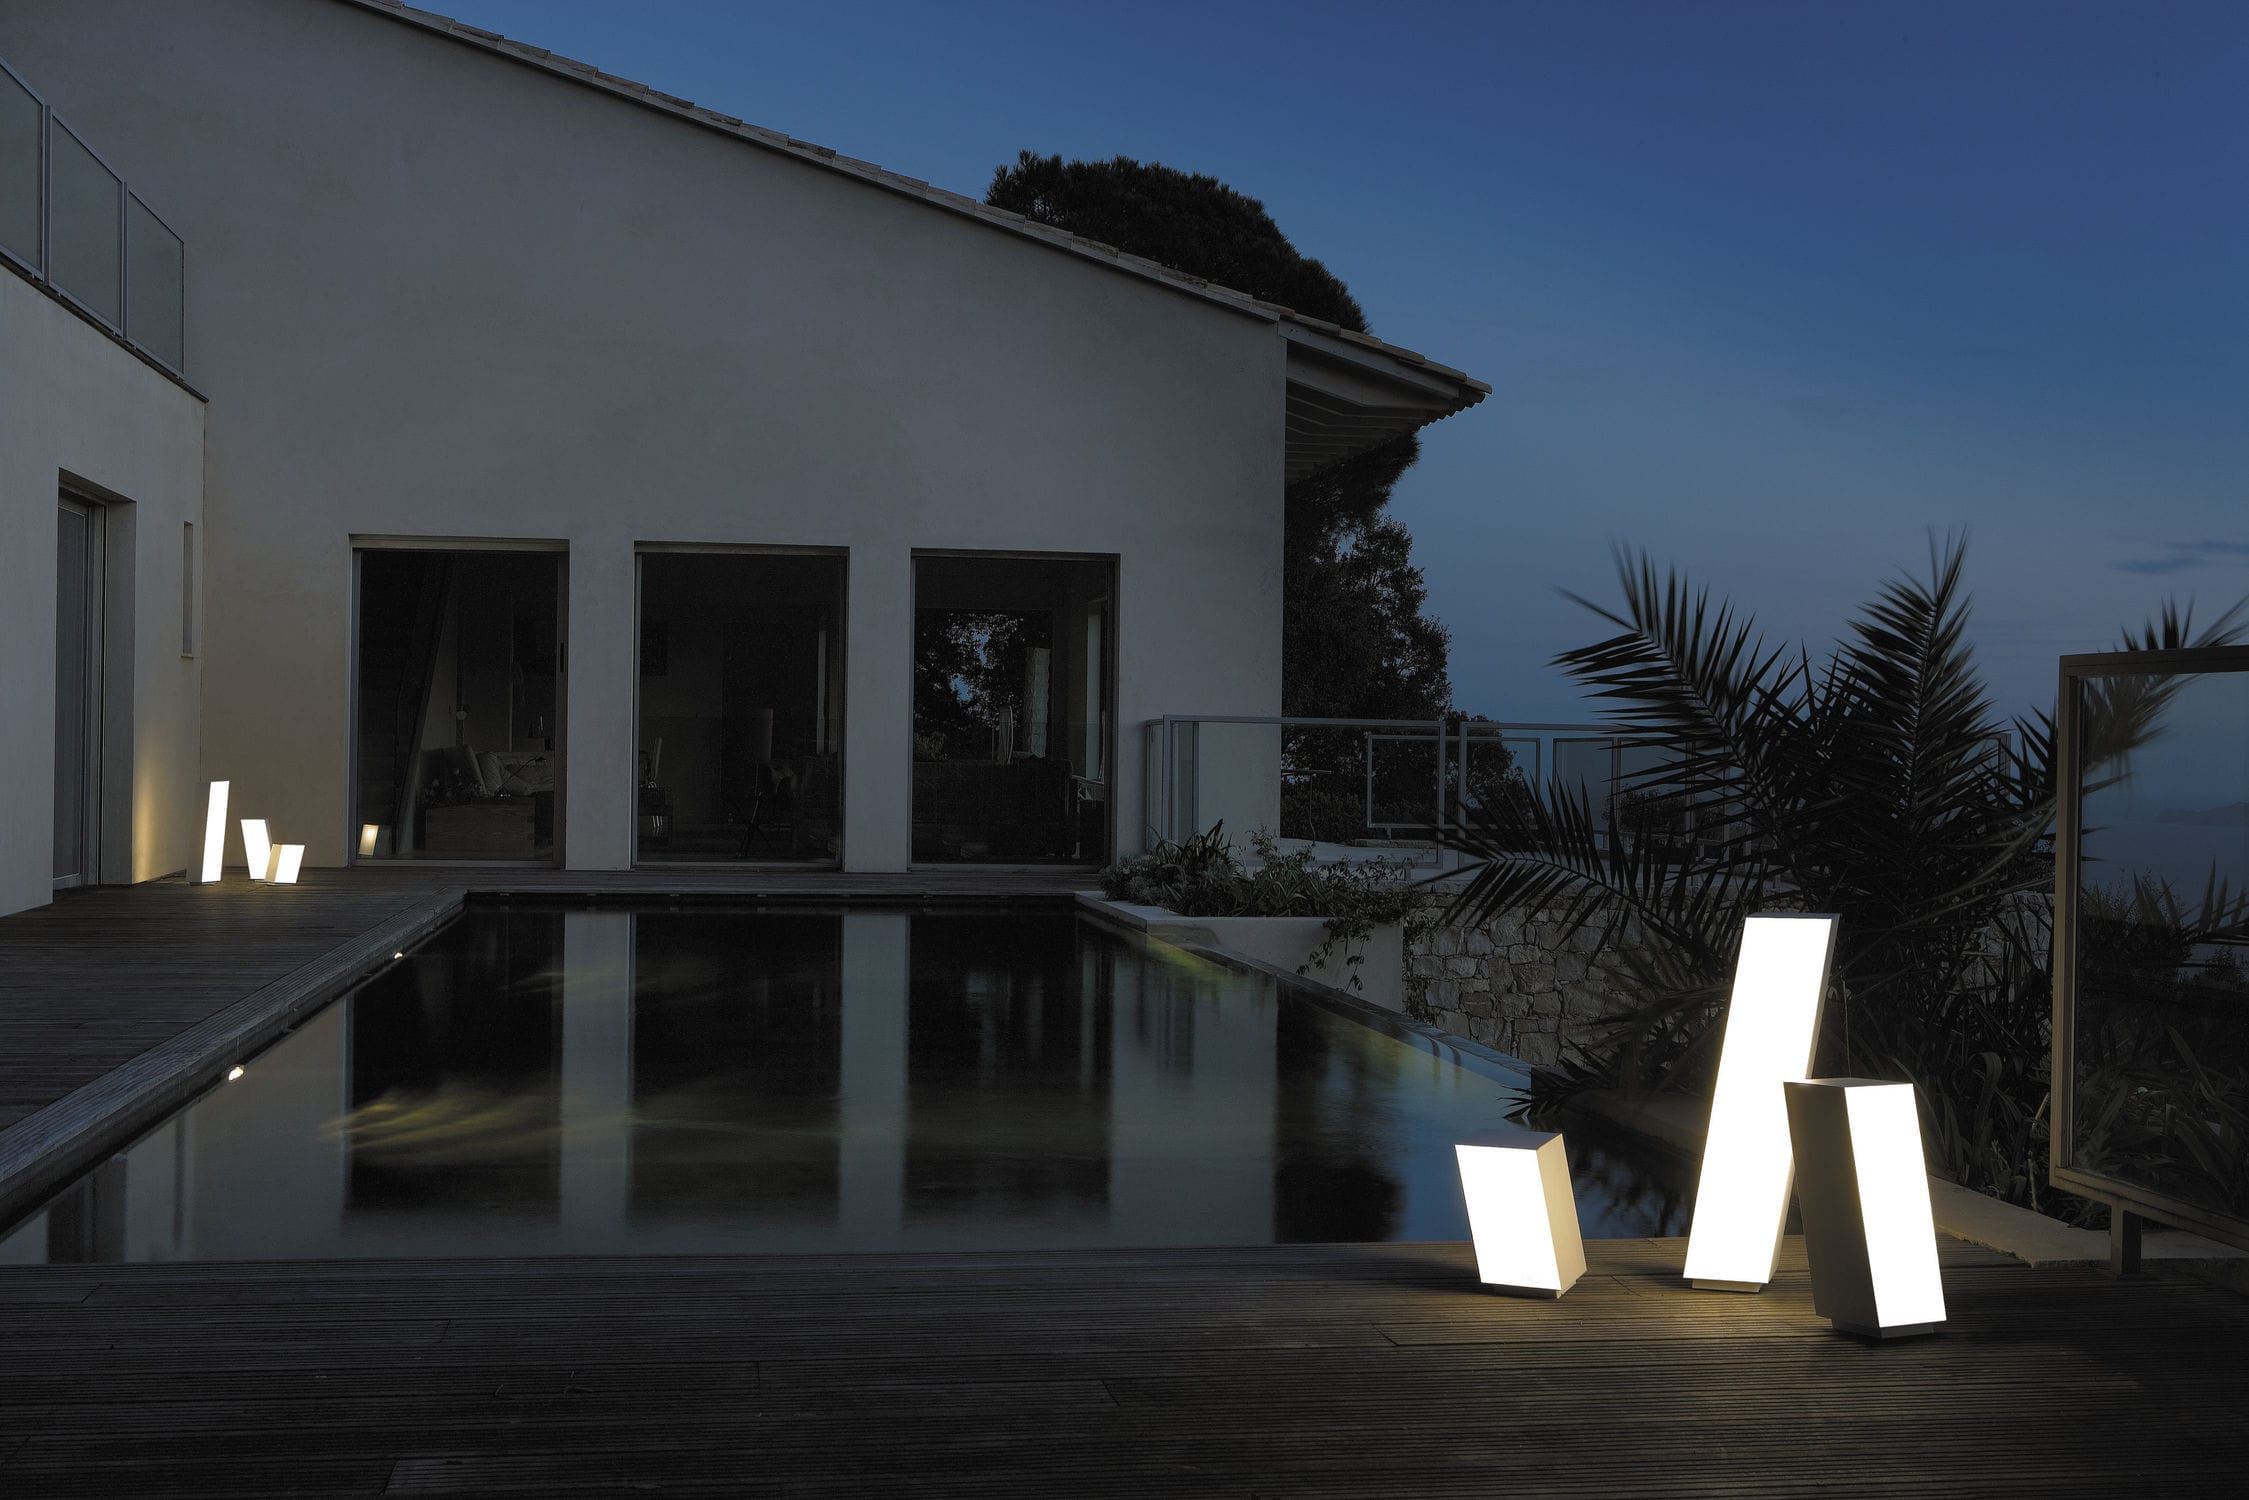 garden bollard lighting. garden bollard light contemporary polycarbonate led fall modular lighting instruments